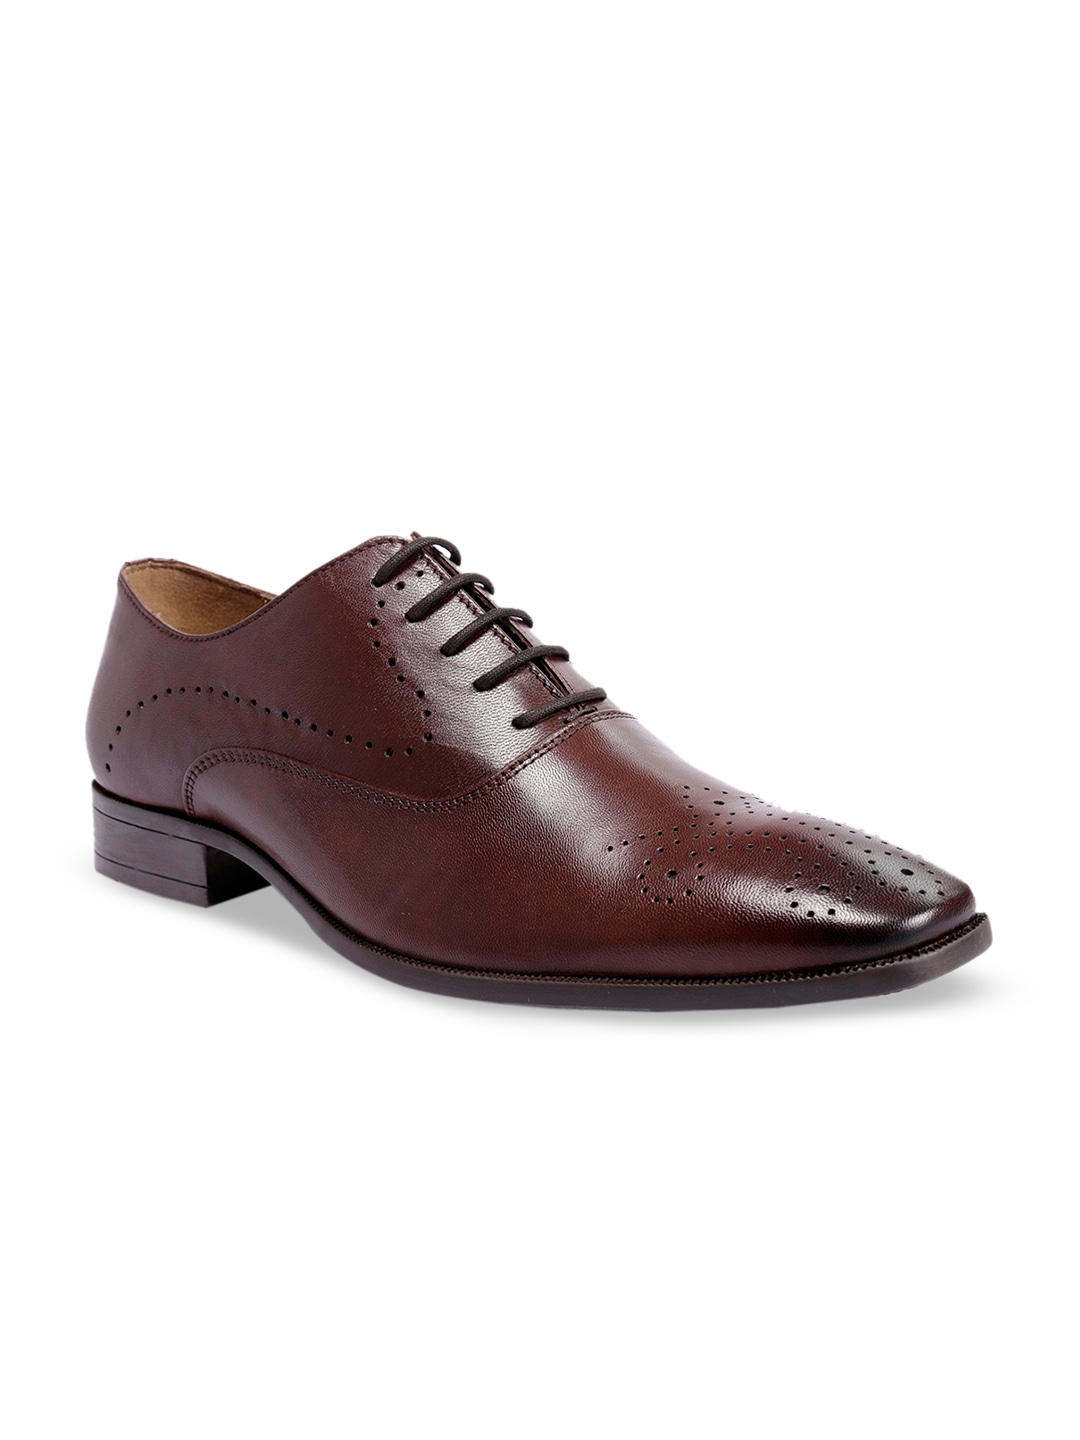 Brown Solid Leather Formal Oxfords